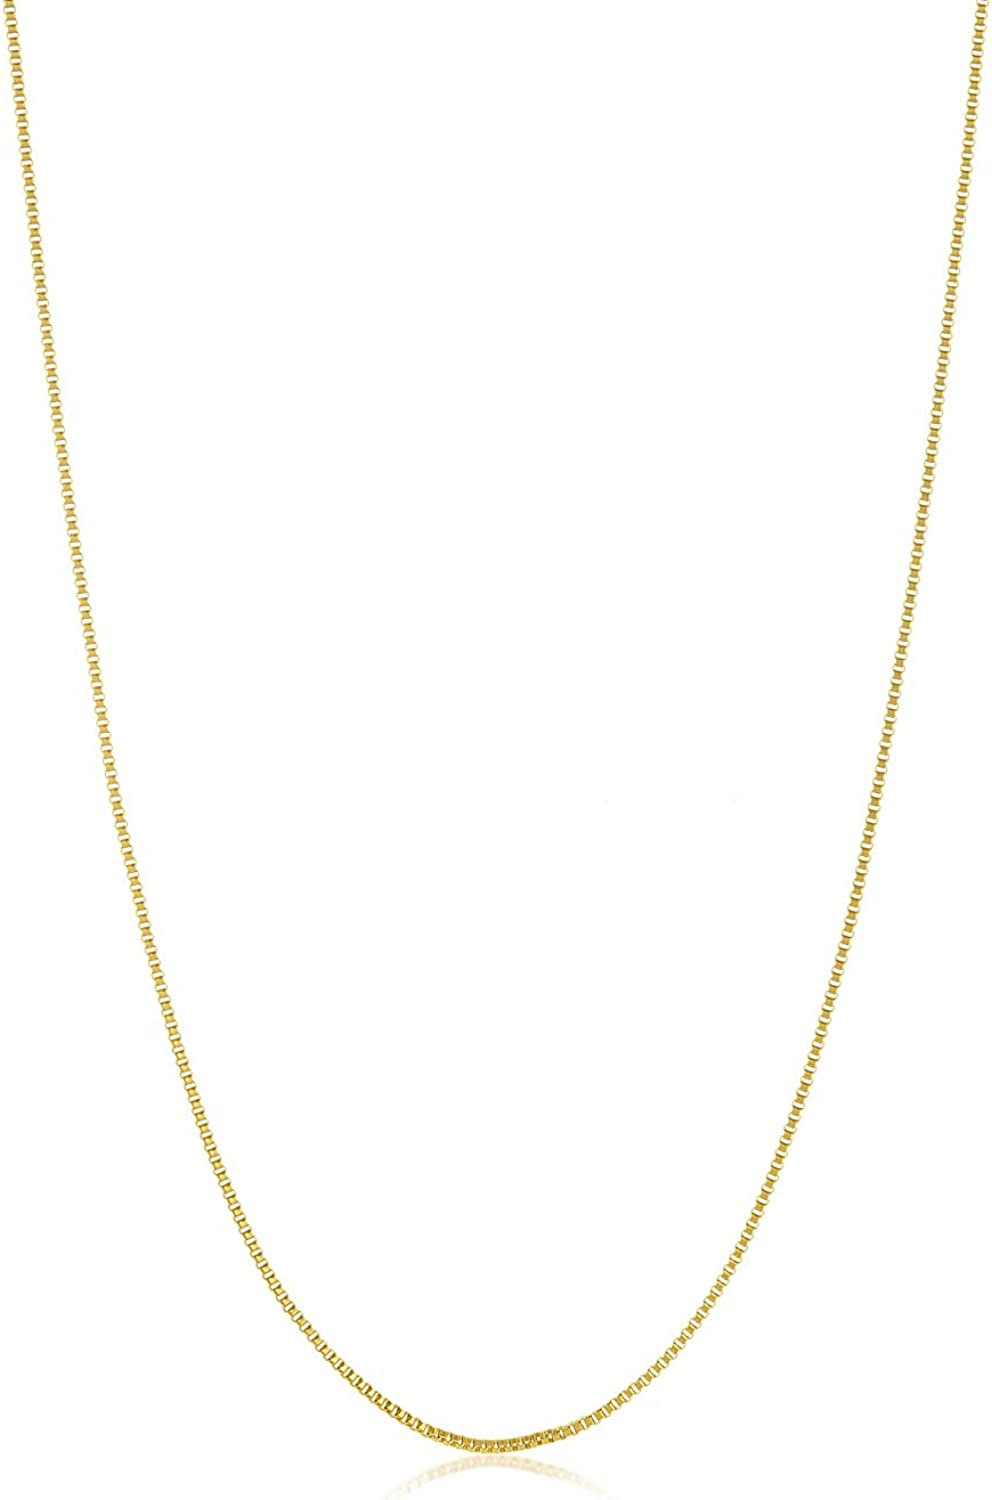 30 inches The Bling Factory Narrow 2.5mm 14k Gold Plated Stainless Steel Ball Chain w//Lobster Clasp